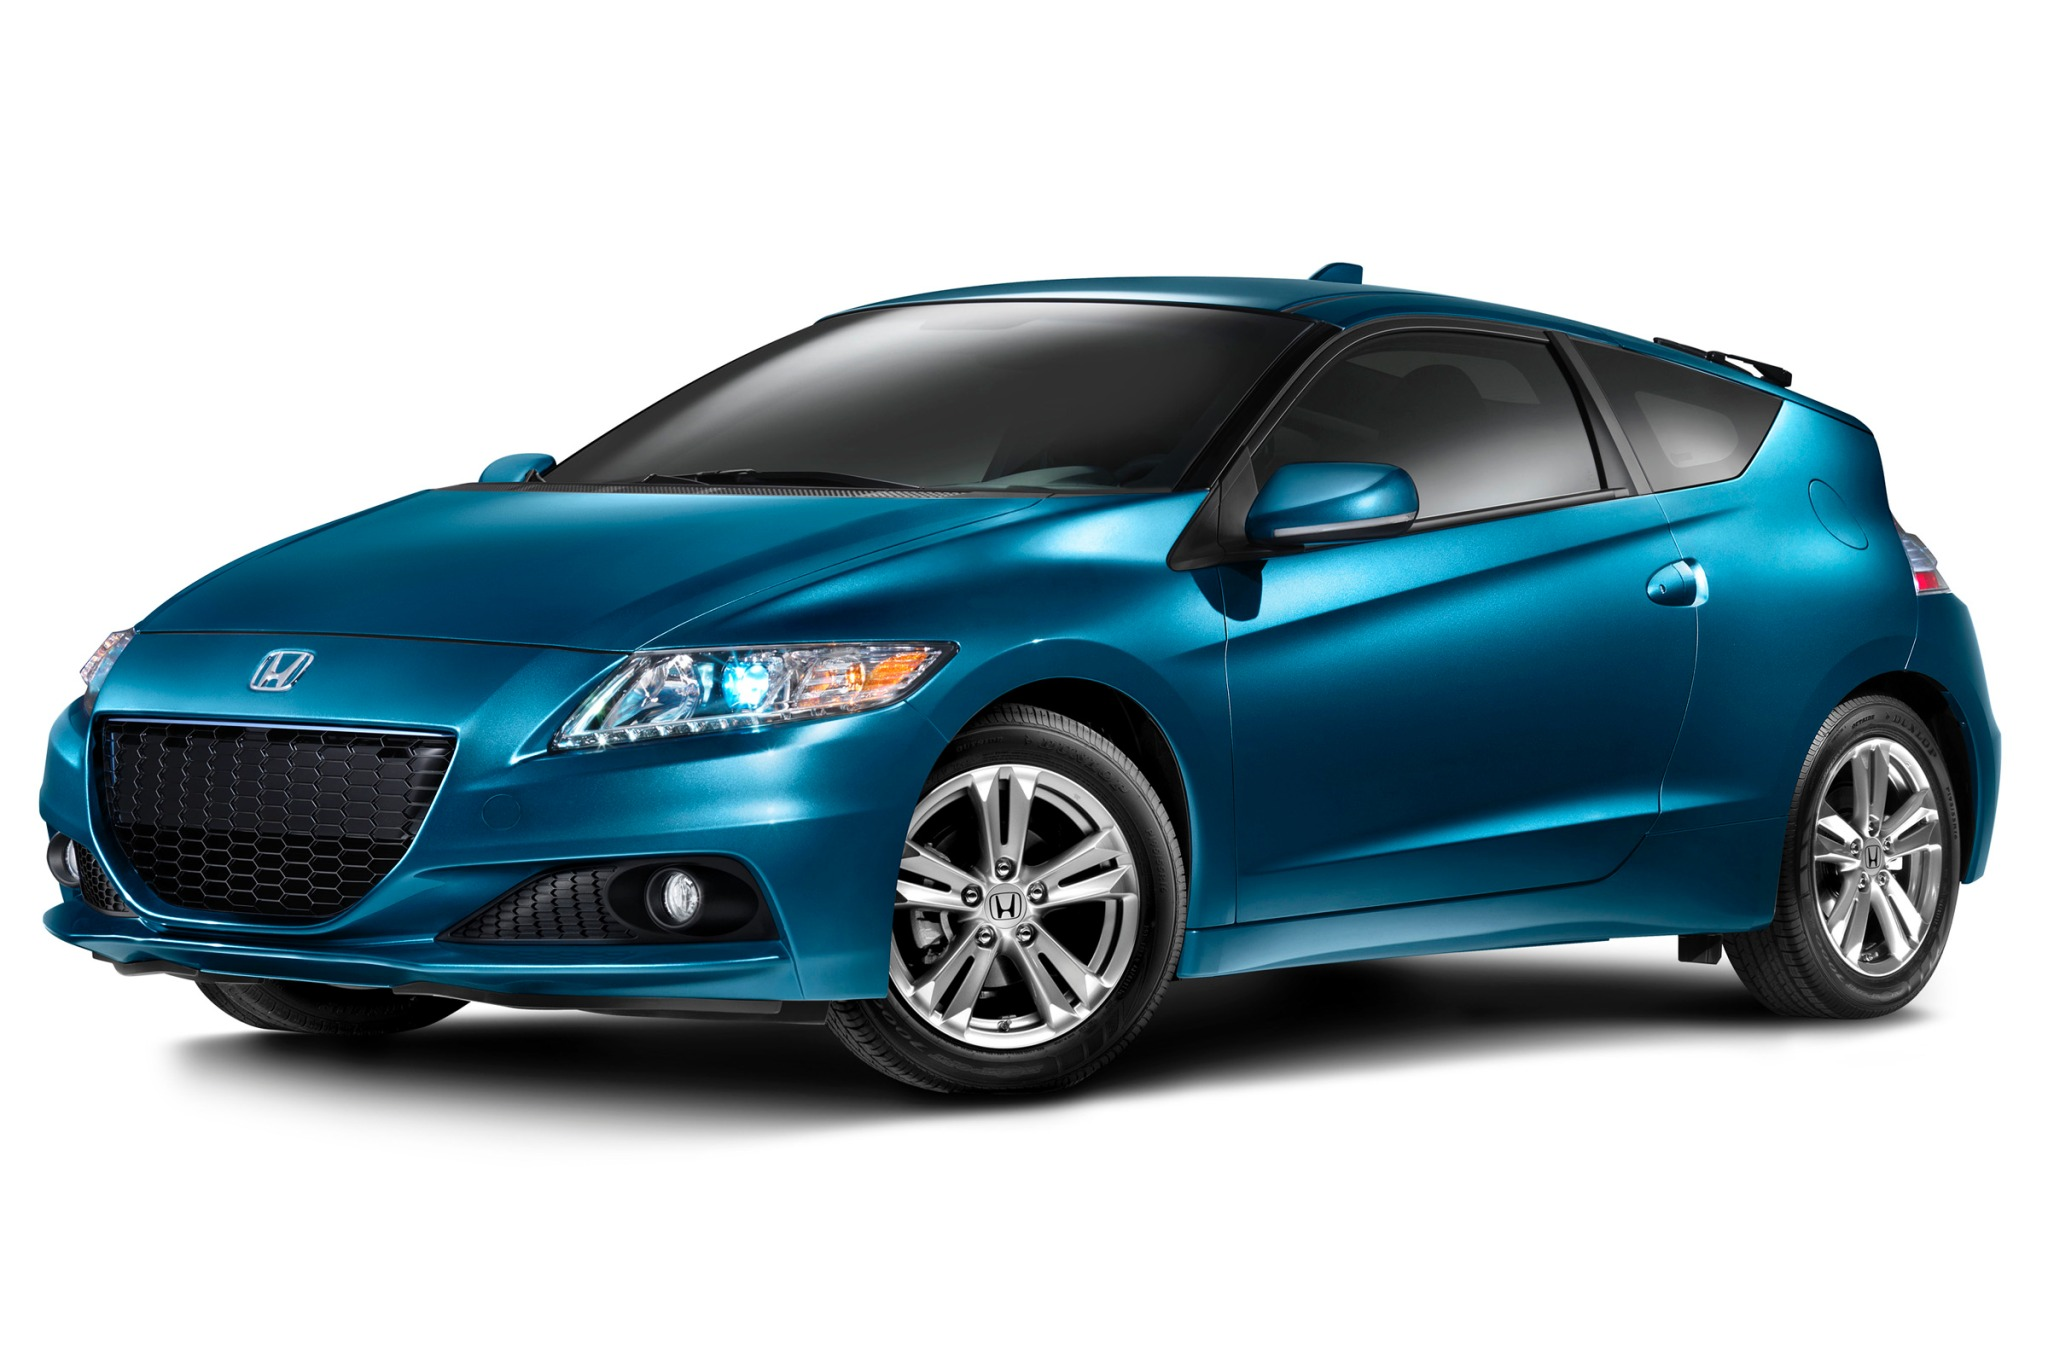 2013 Honda CR-Z 2dr Hatch exterior #2